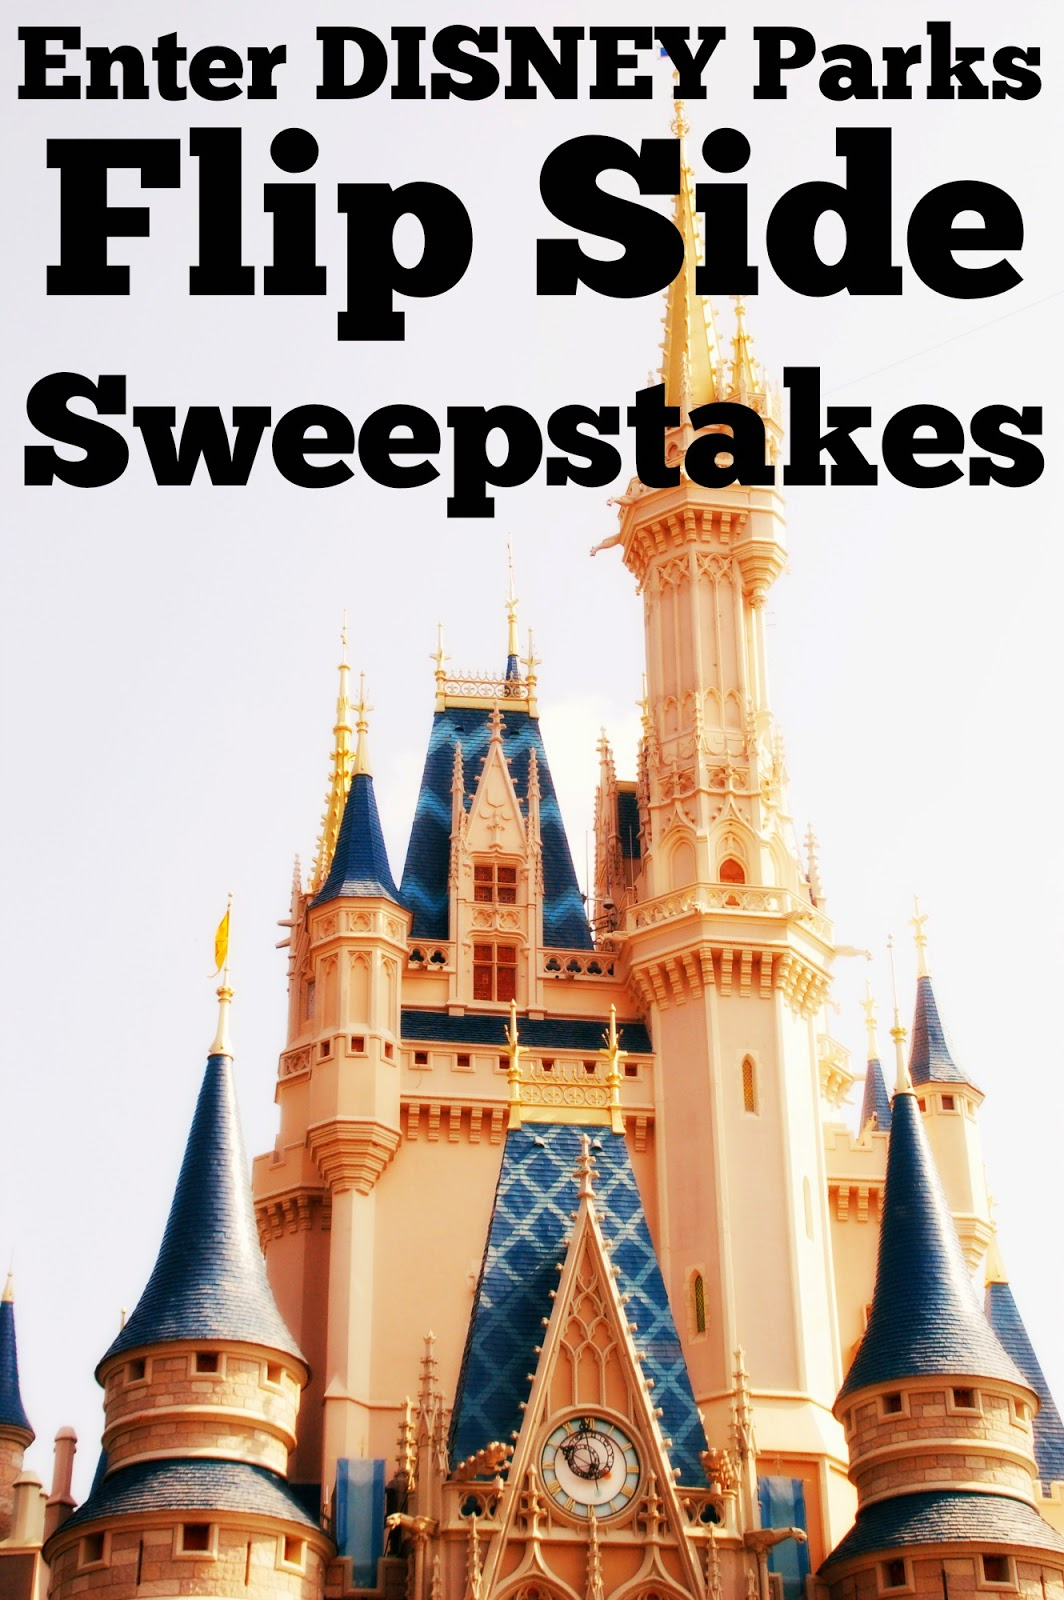 side by side sweepstakes disney sisters disney parks flip side sweepstakes disneyside 6053